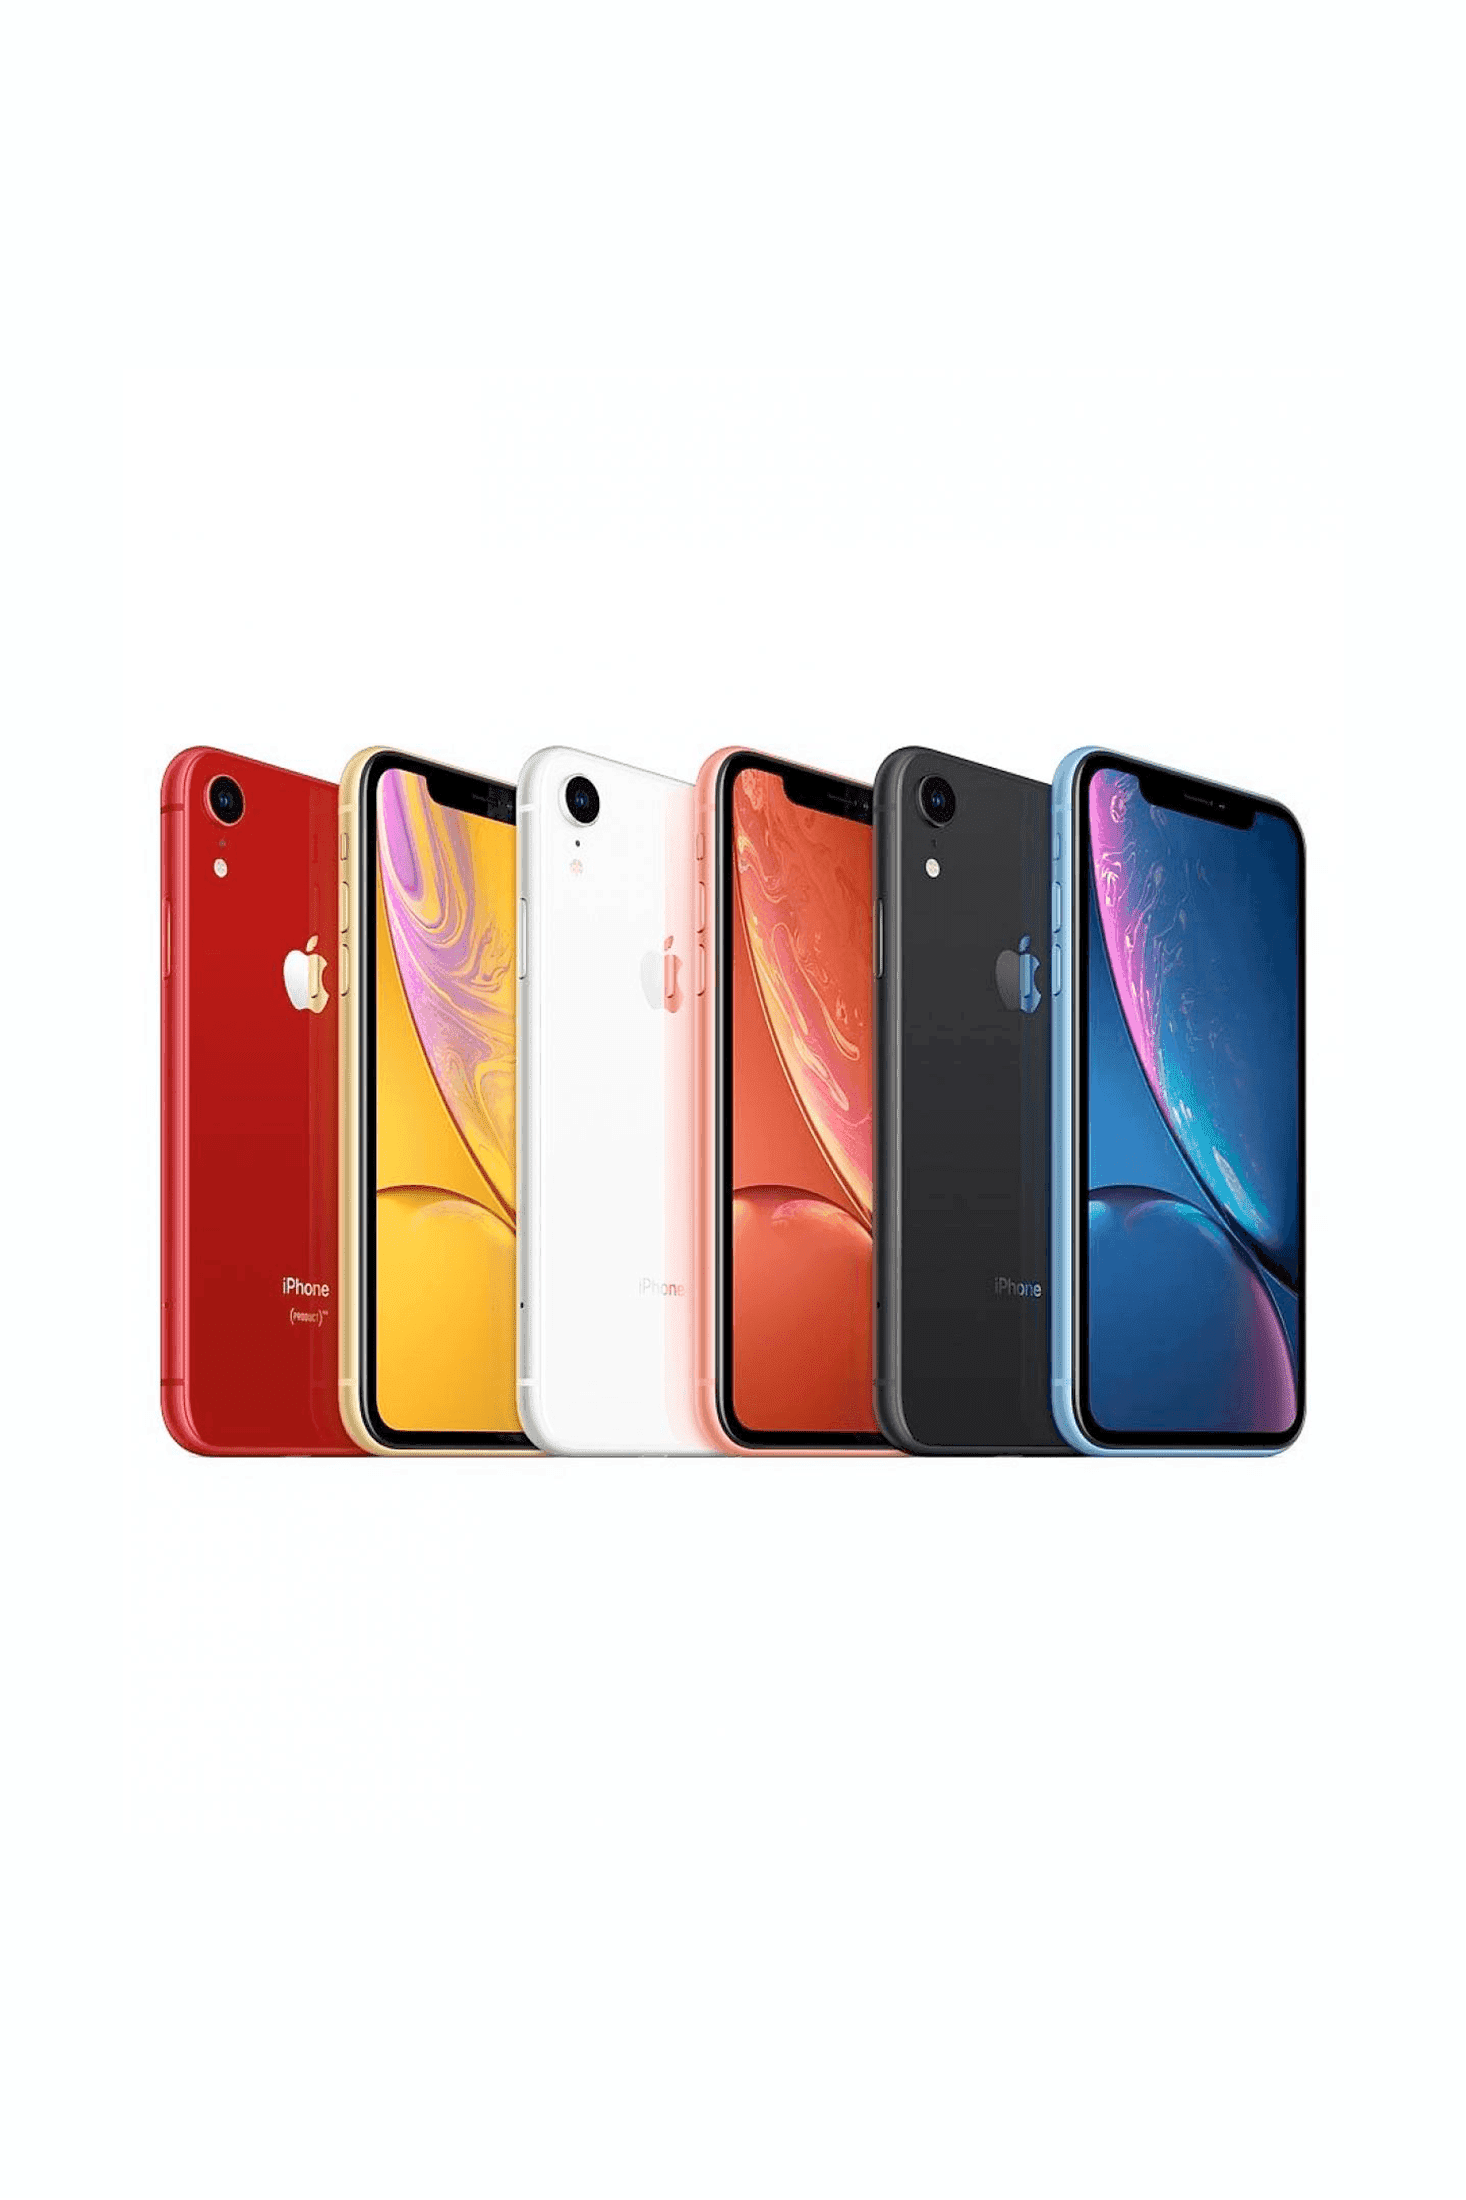 iPhone XR GB256